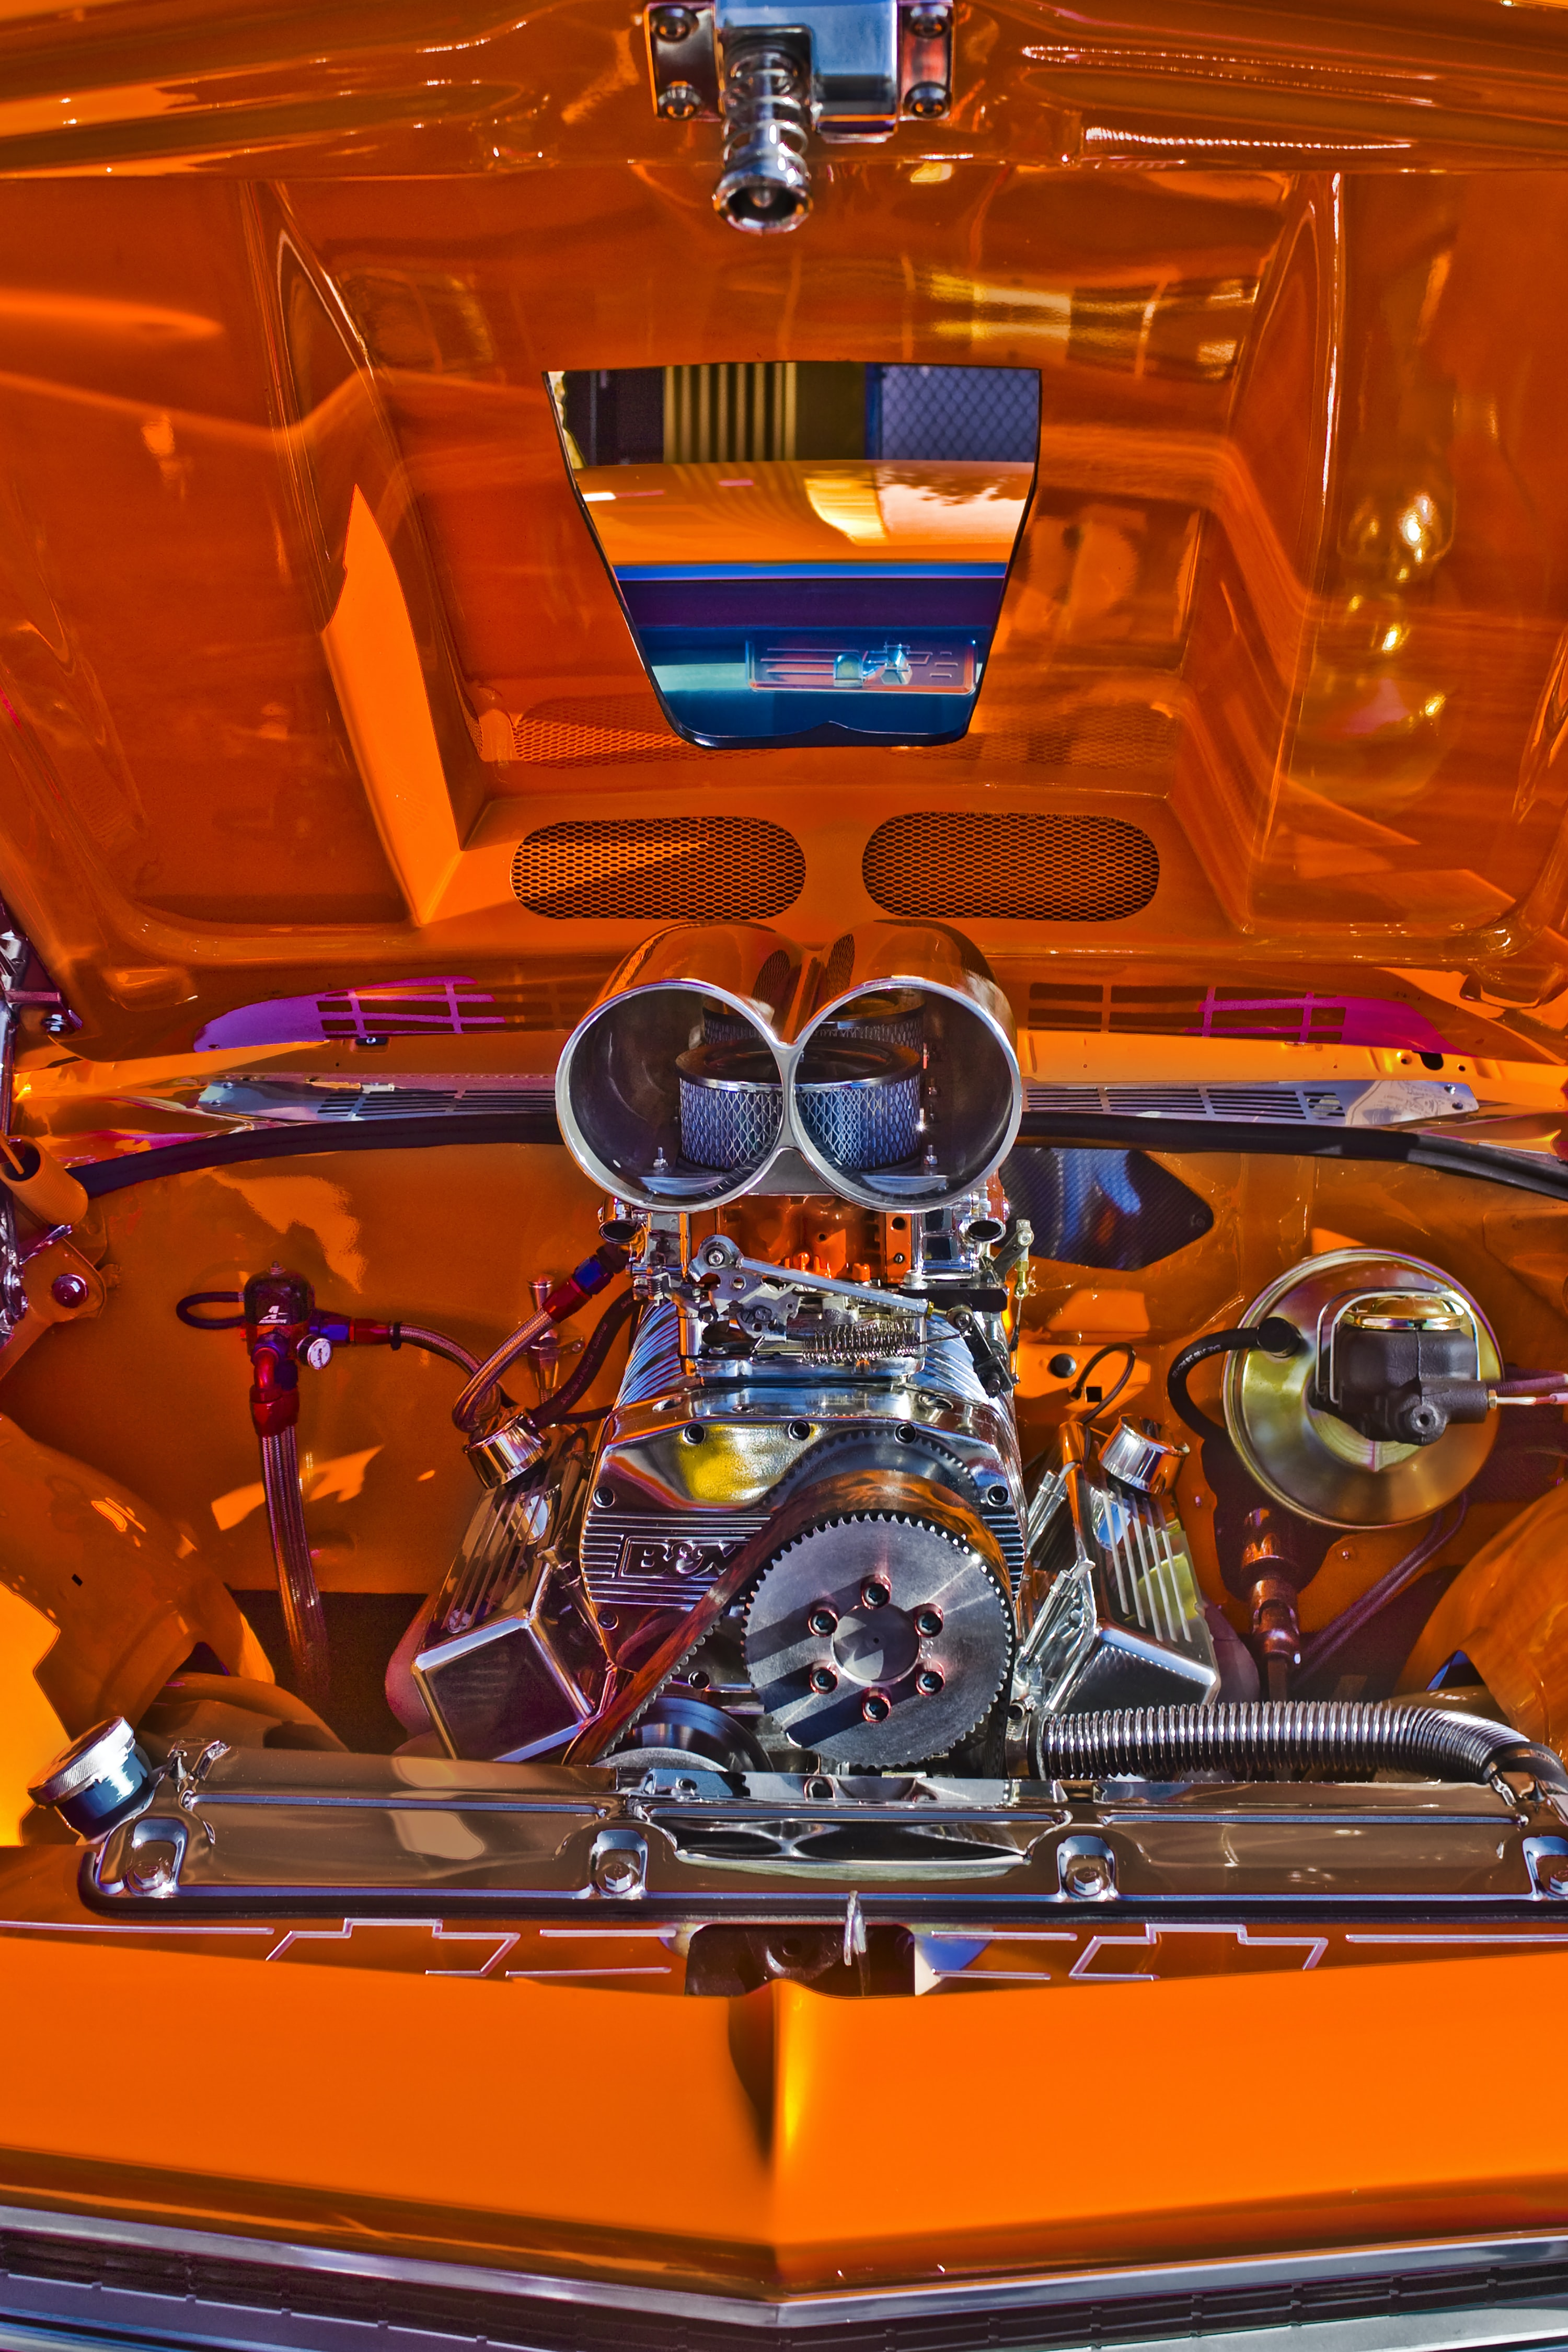 Under the hood of an orange car with a shiny metallic engine